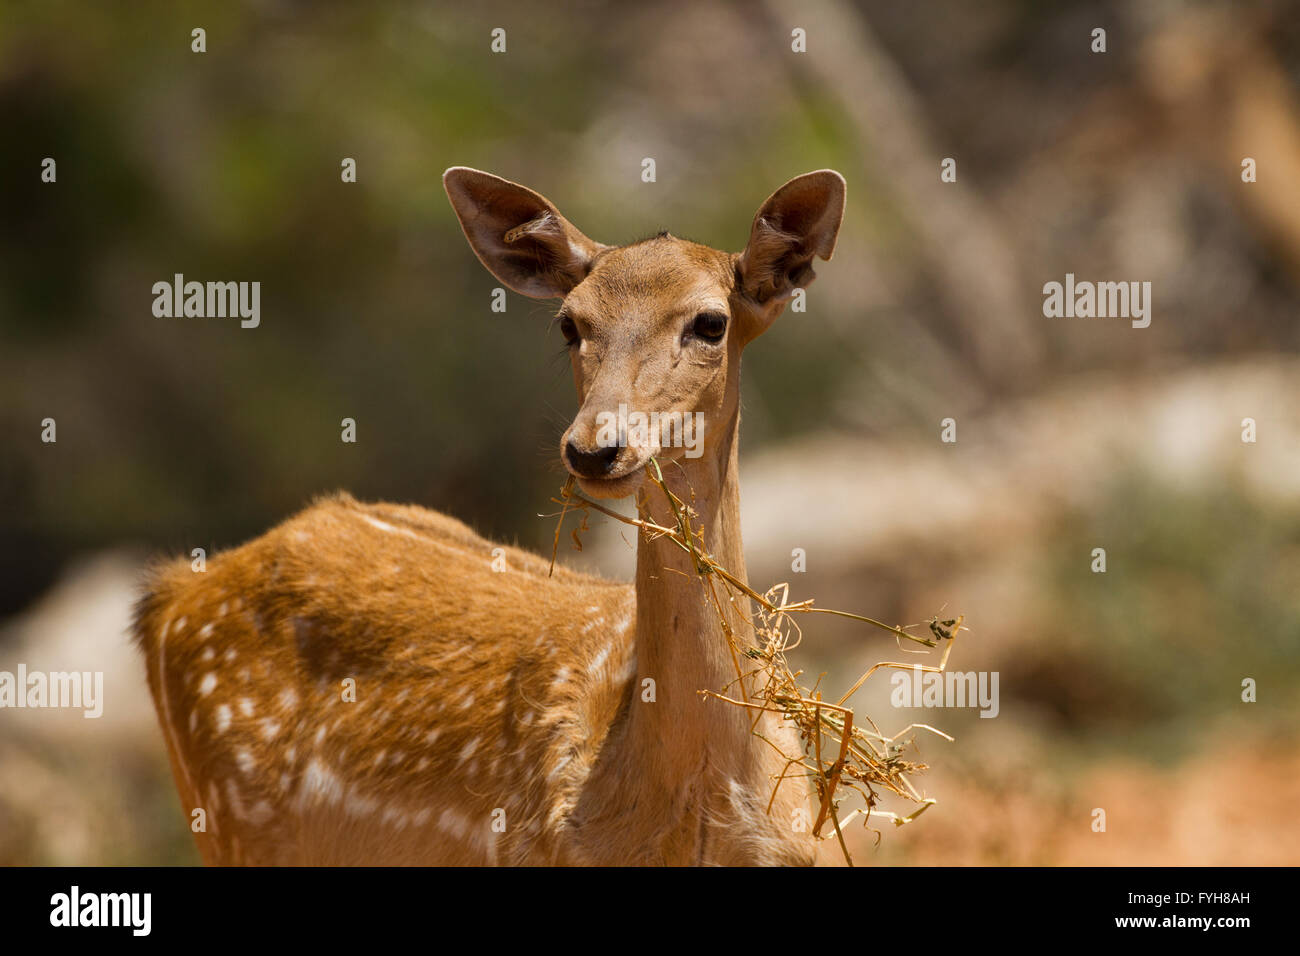 Female Mesopotamian Fallow deer (Dama mesopotamica) Photographed in Israel Carmel forest in August - Stock Image